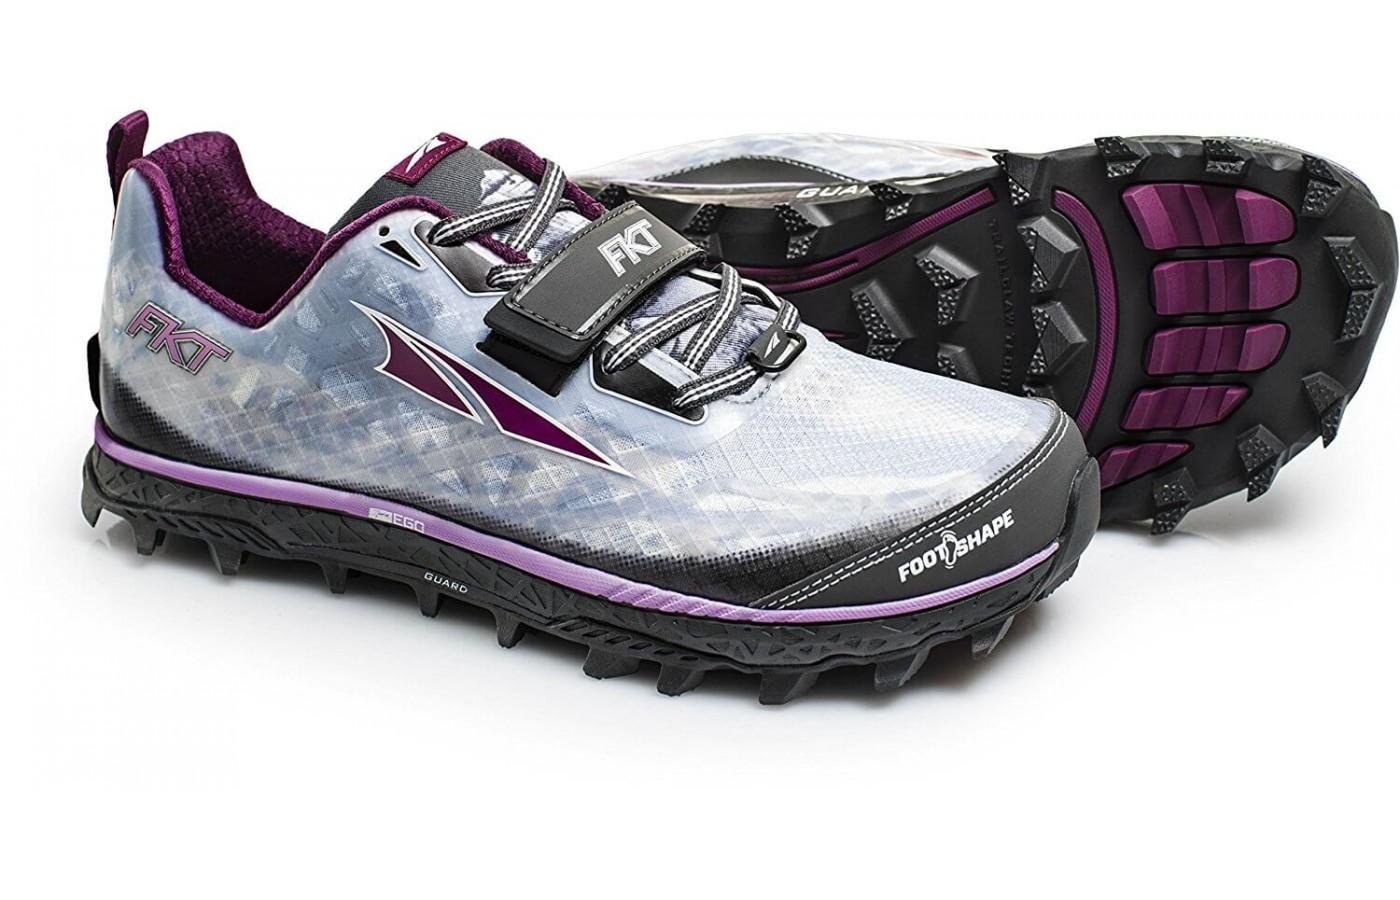 The Altra King MT features a zero drop like other Altra shoes